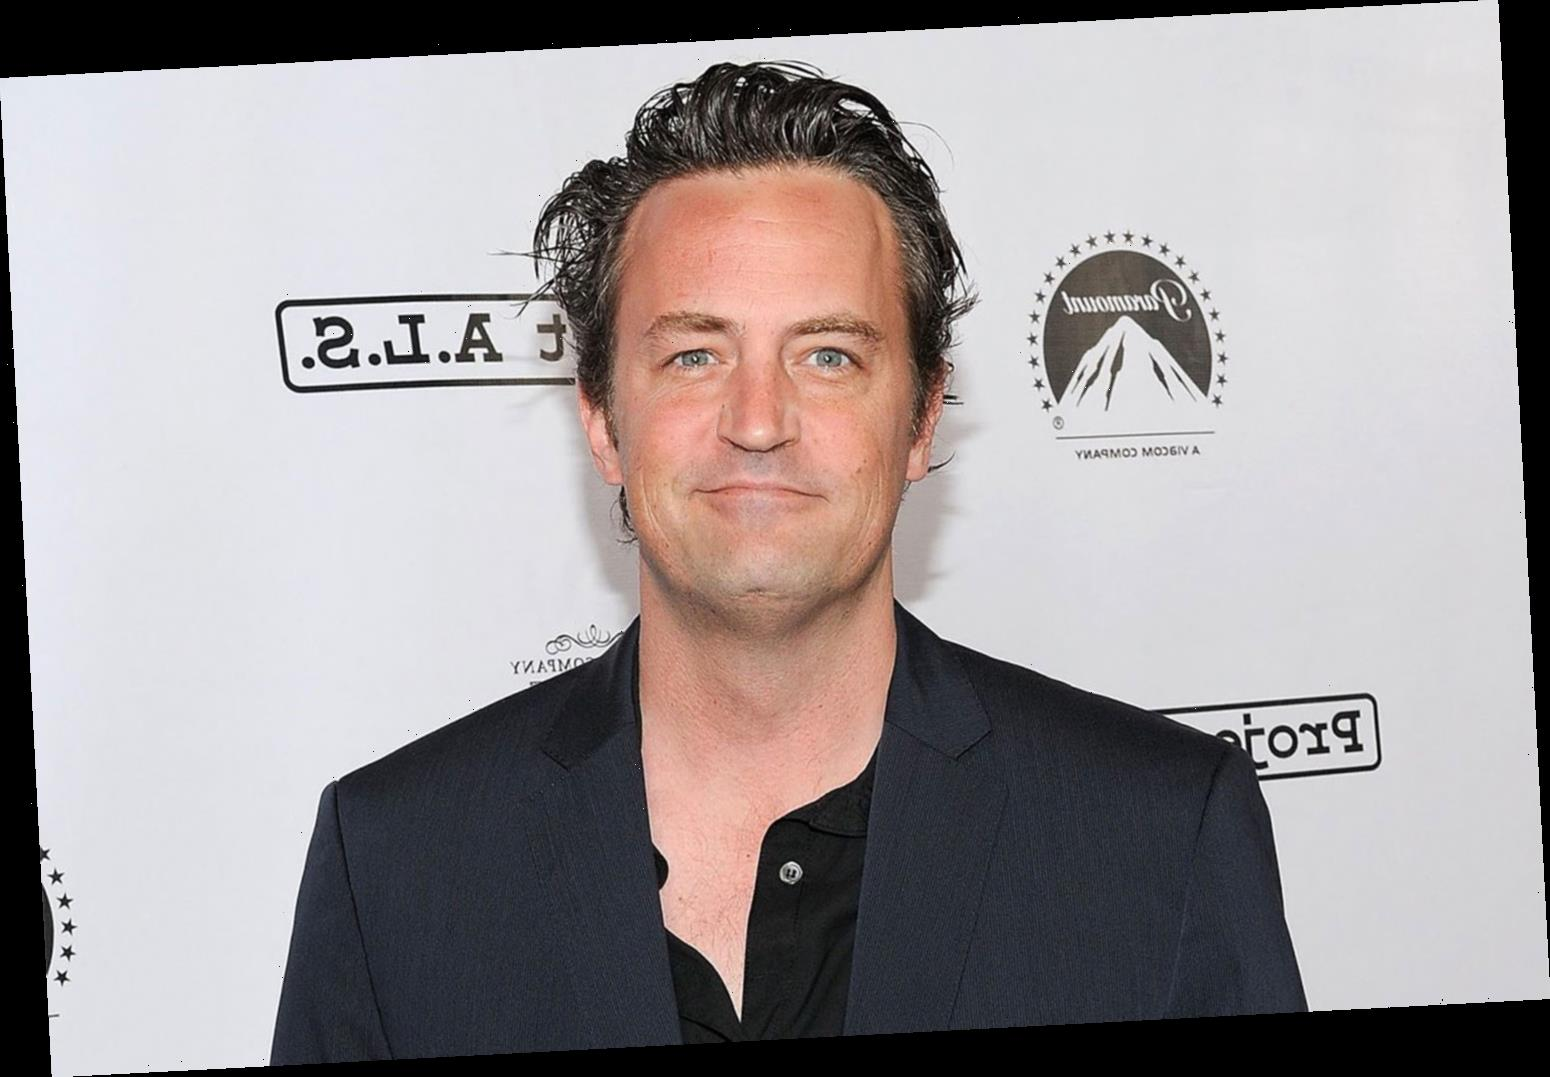 Matthew Perry Shares First Images of Fiancée Molly Hurwitz to Promote His Friends Merch Line